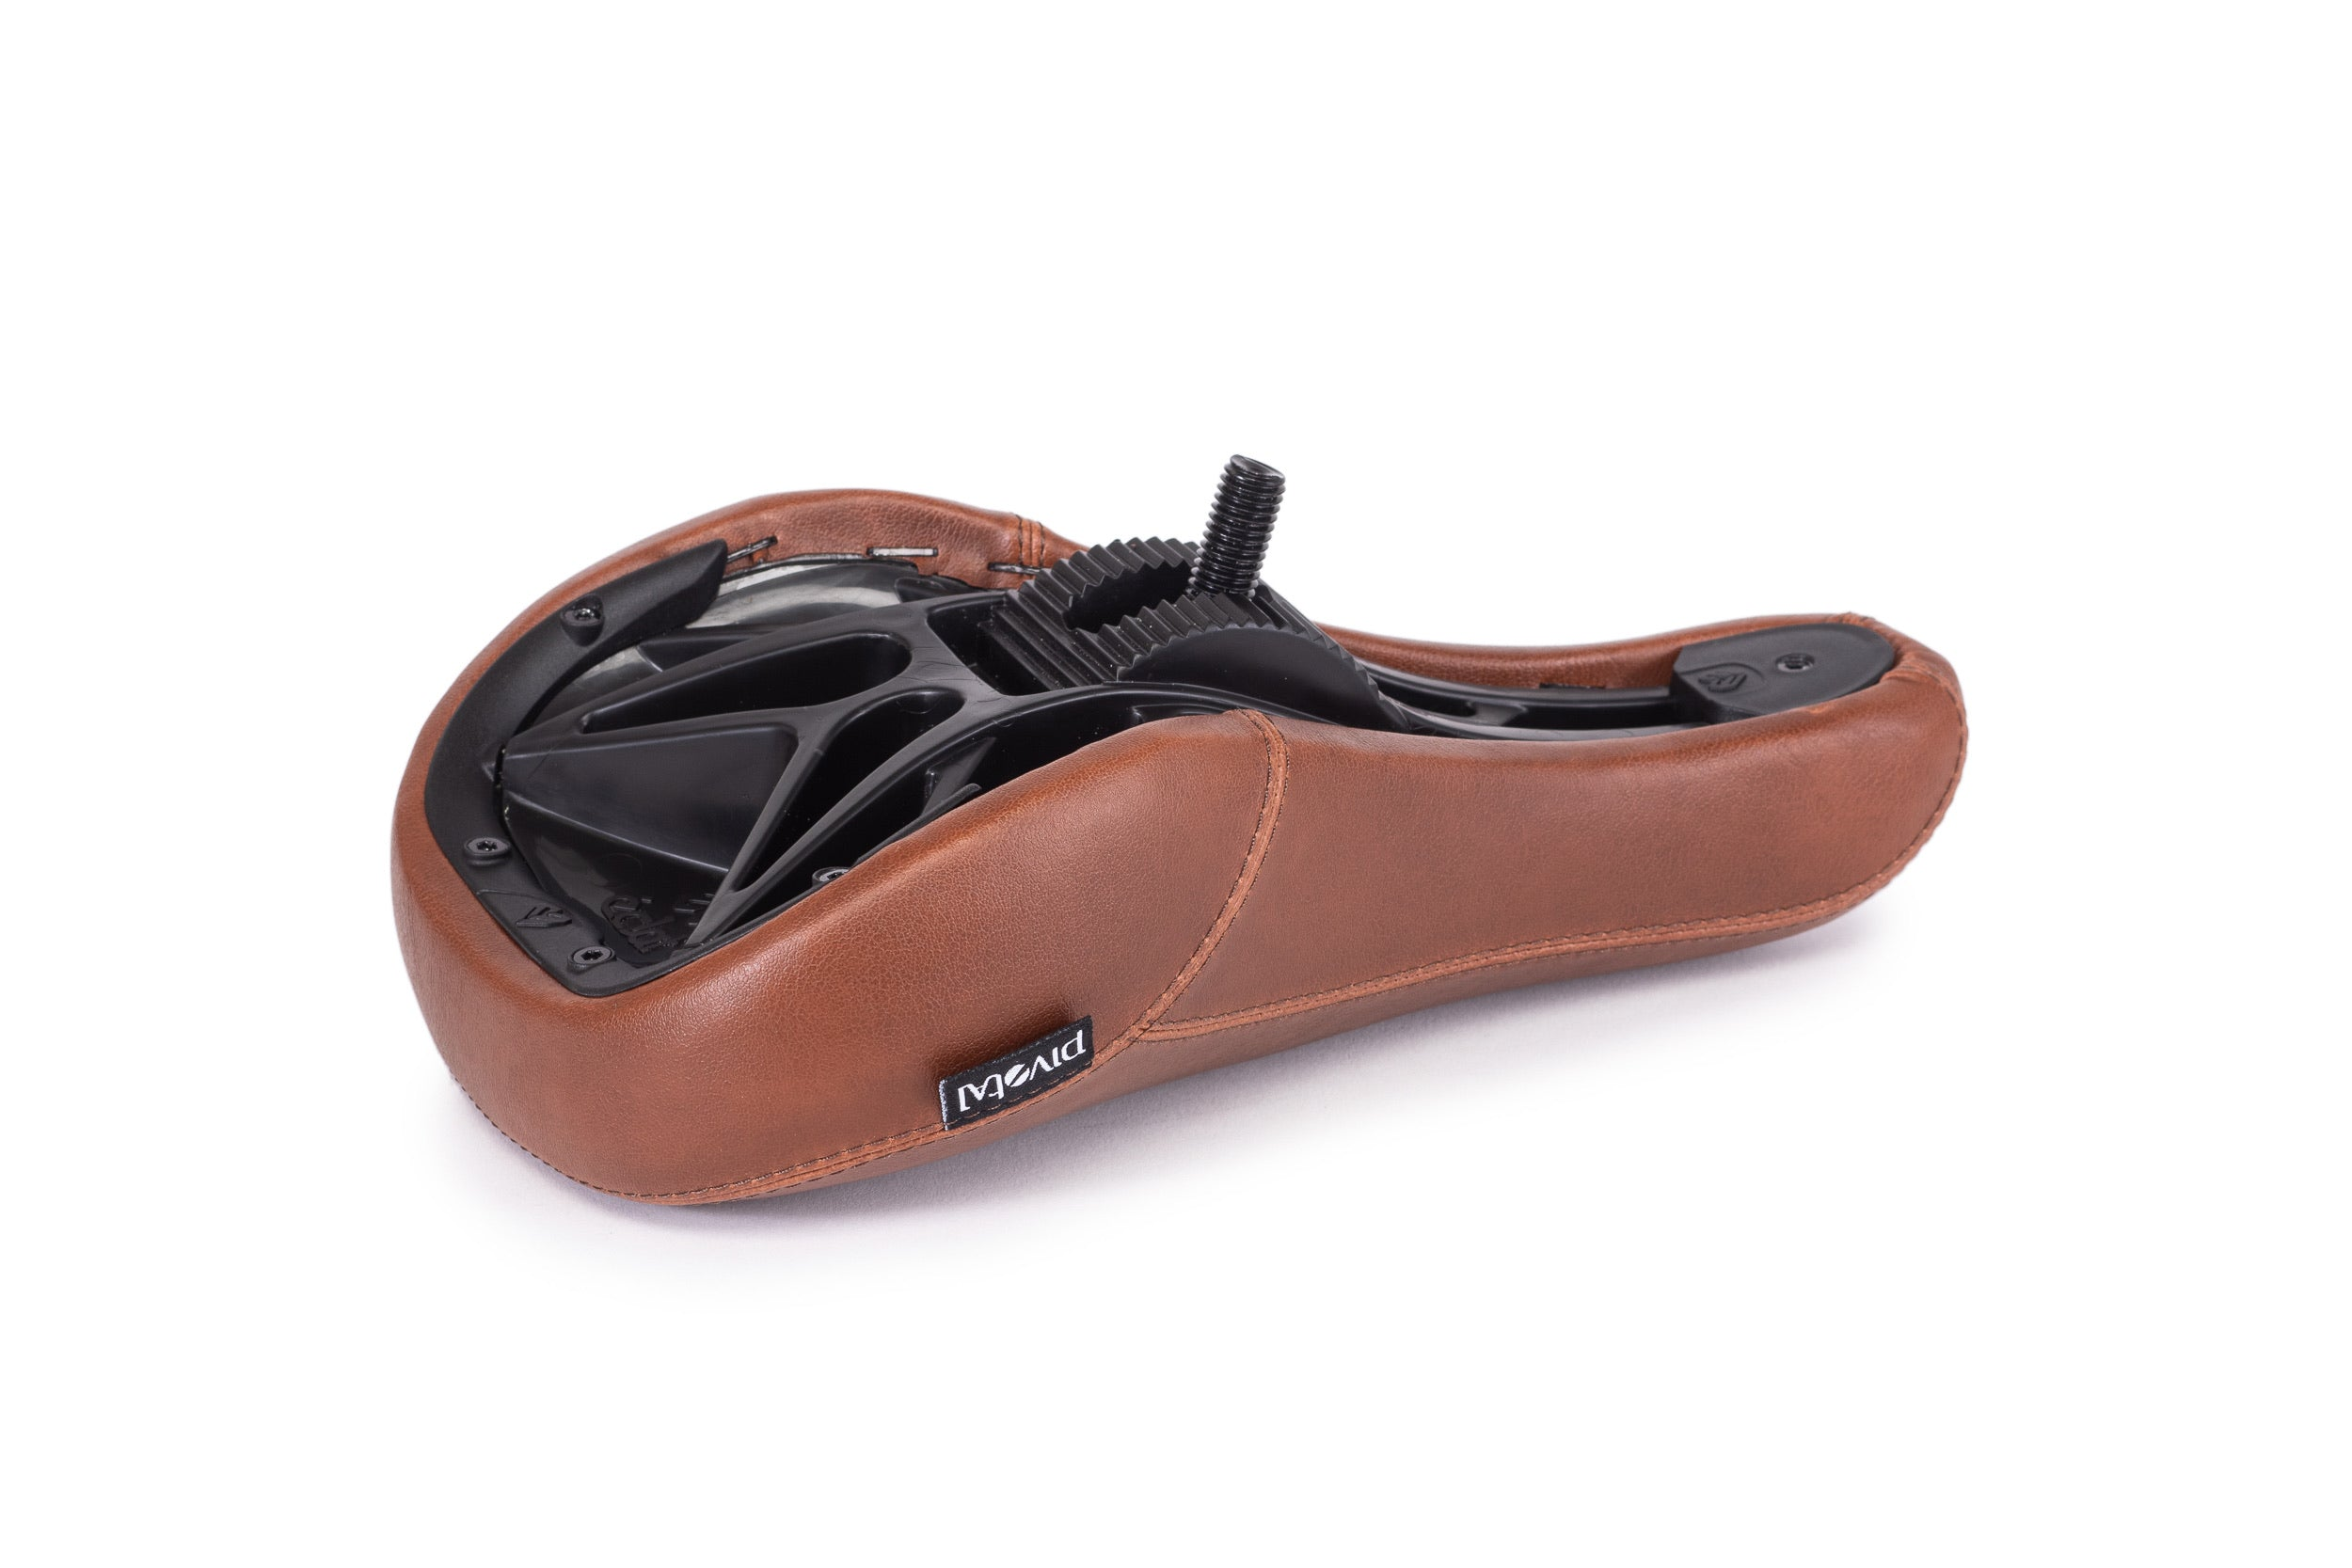 Eclat Bios Leather Fat Pivotal Sattel / Seat